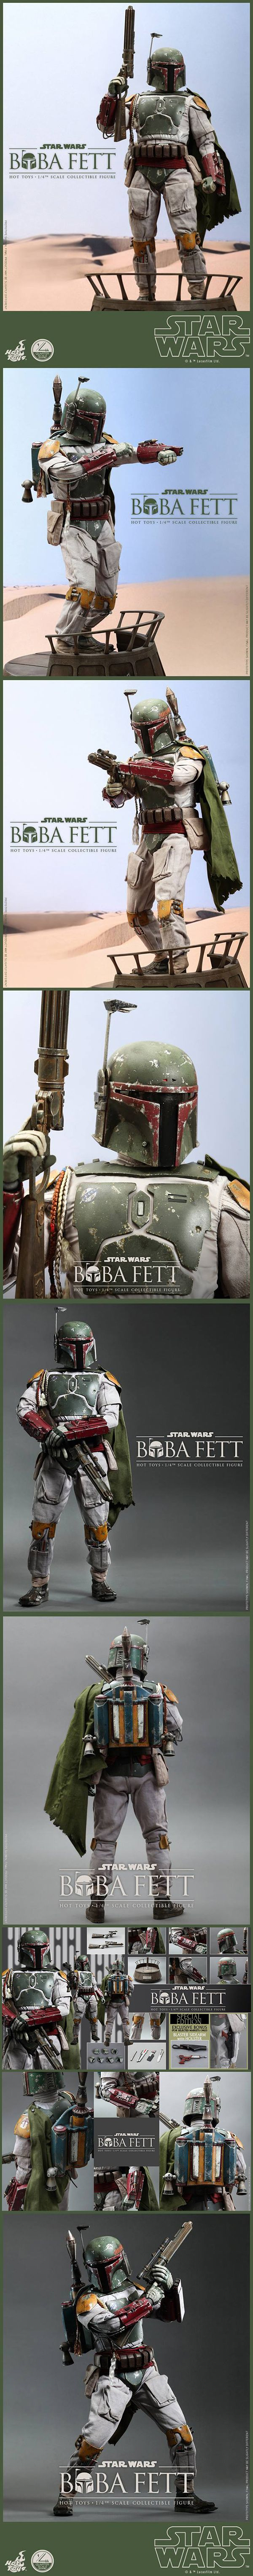 Hot Toys' New Quarter Scale Boba Fett Figure Is Worth All The Bounties One of their newest collectibles is a quarter scale Episode VI Boba Fett. This collectible figure is insanely detailed. See Here: http://nerdapproved.com/toys/hot-toys-new-quarter-scale-boba-fett-figure-is-worth-all-the-bounties/ #starwars